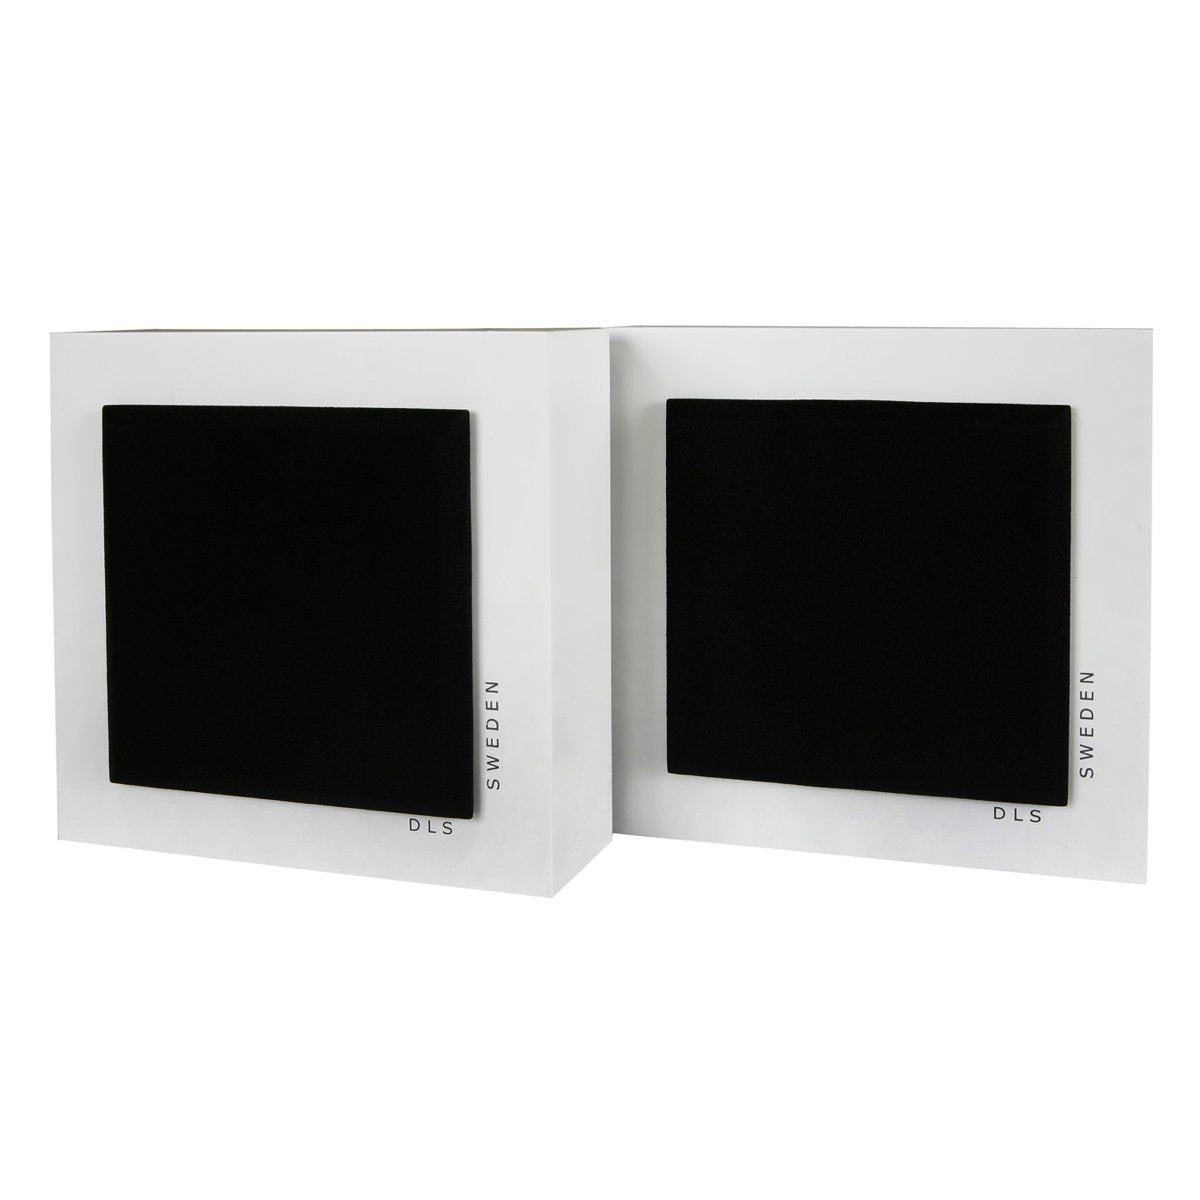 DLS Flatbox Slim Mini On wall speaker - Pair